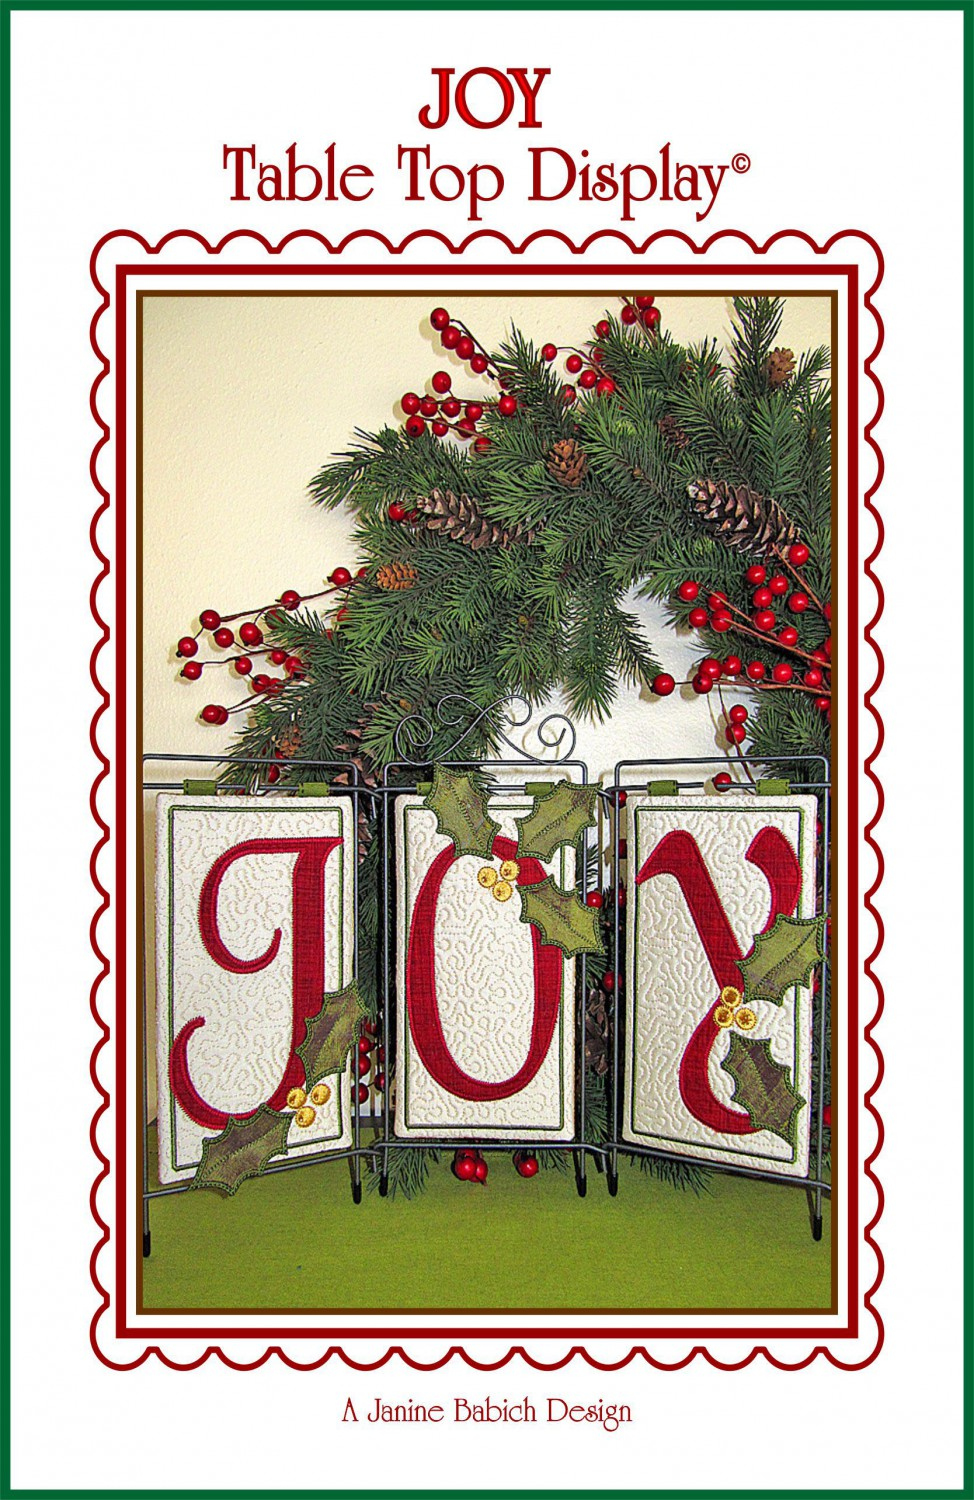 Joy Table Top Display by Janine Babich